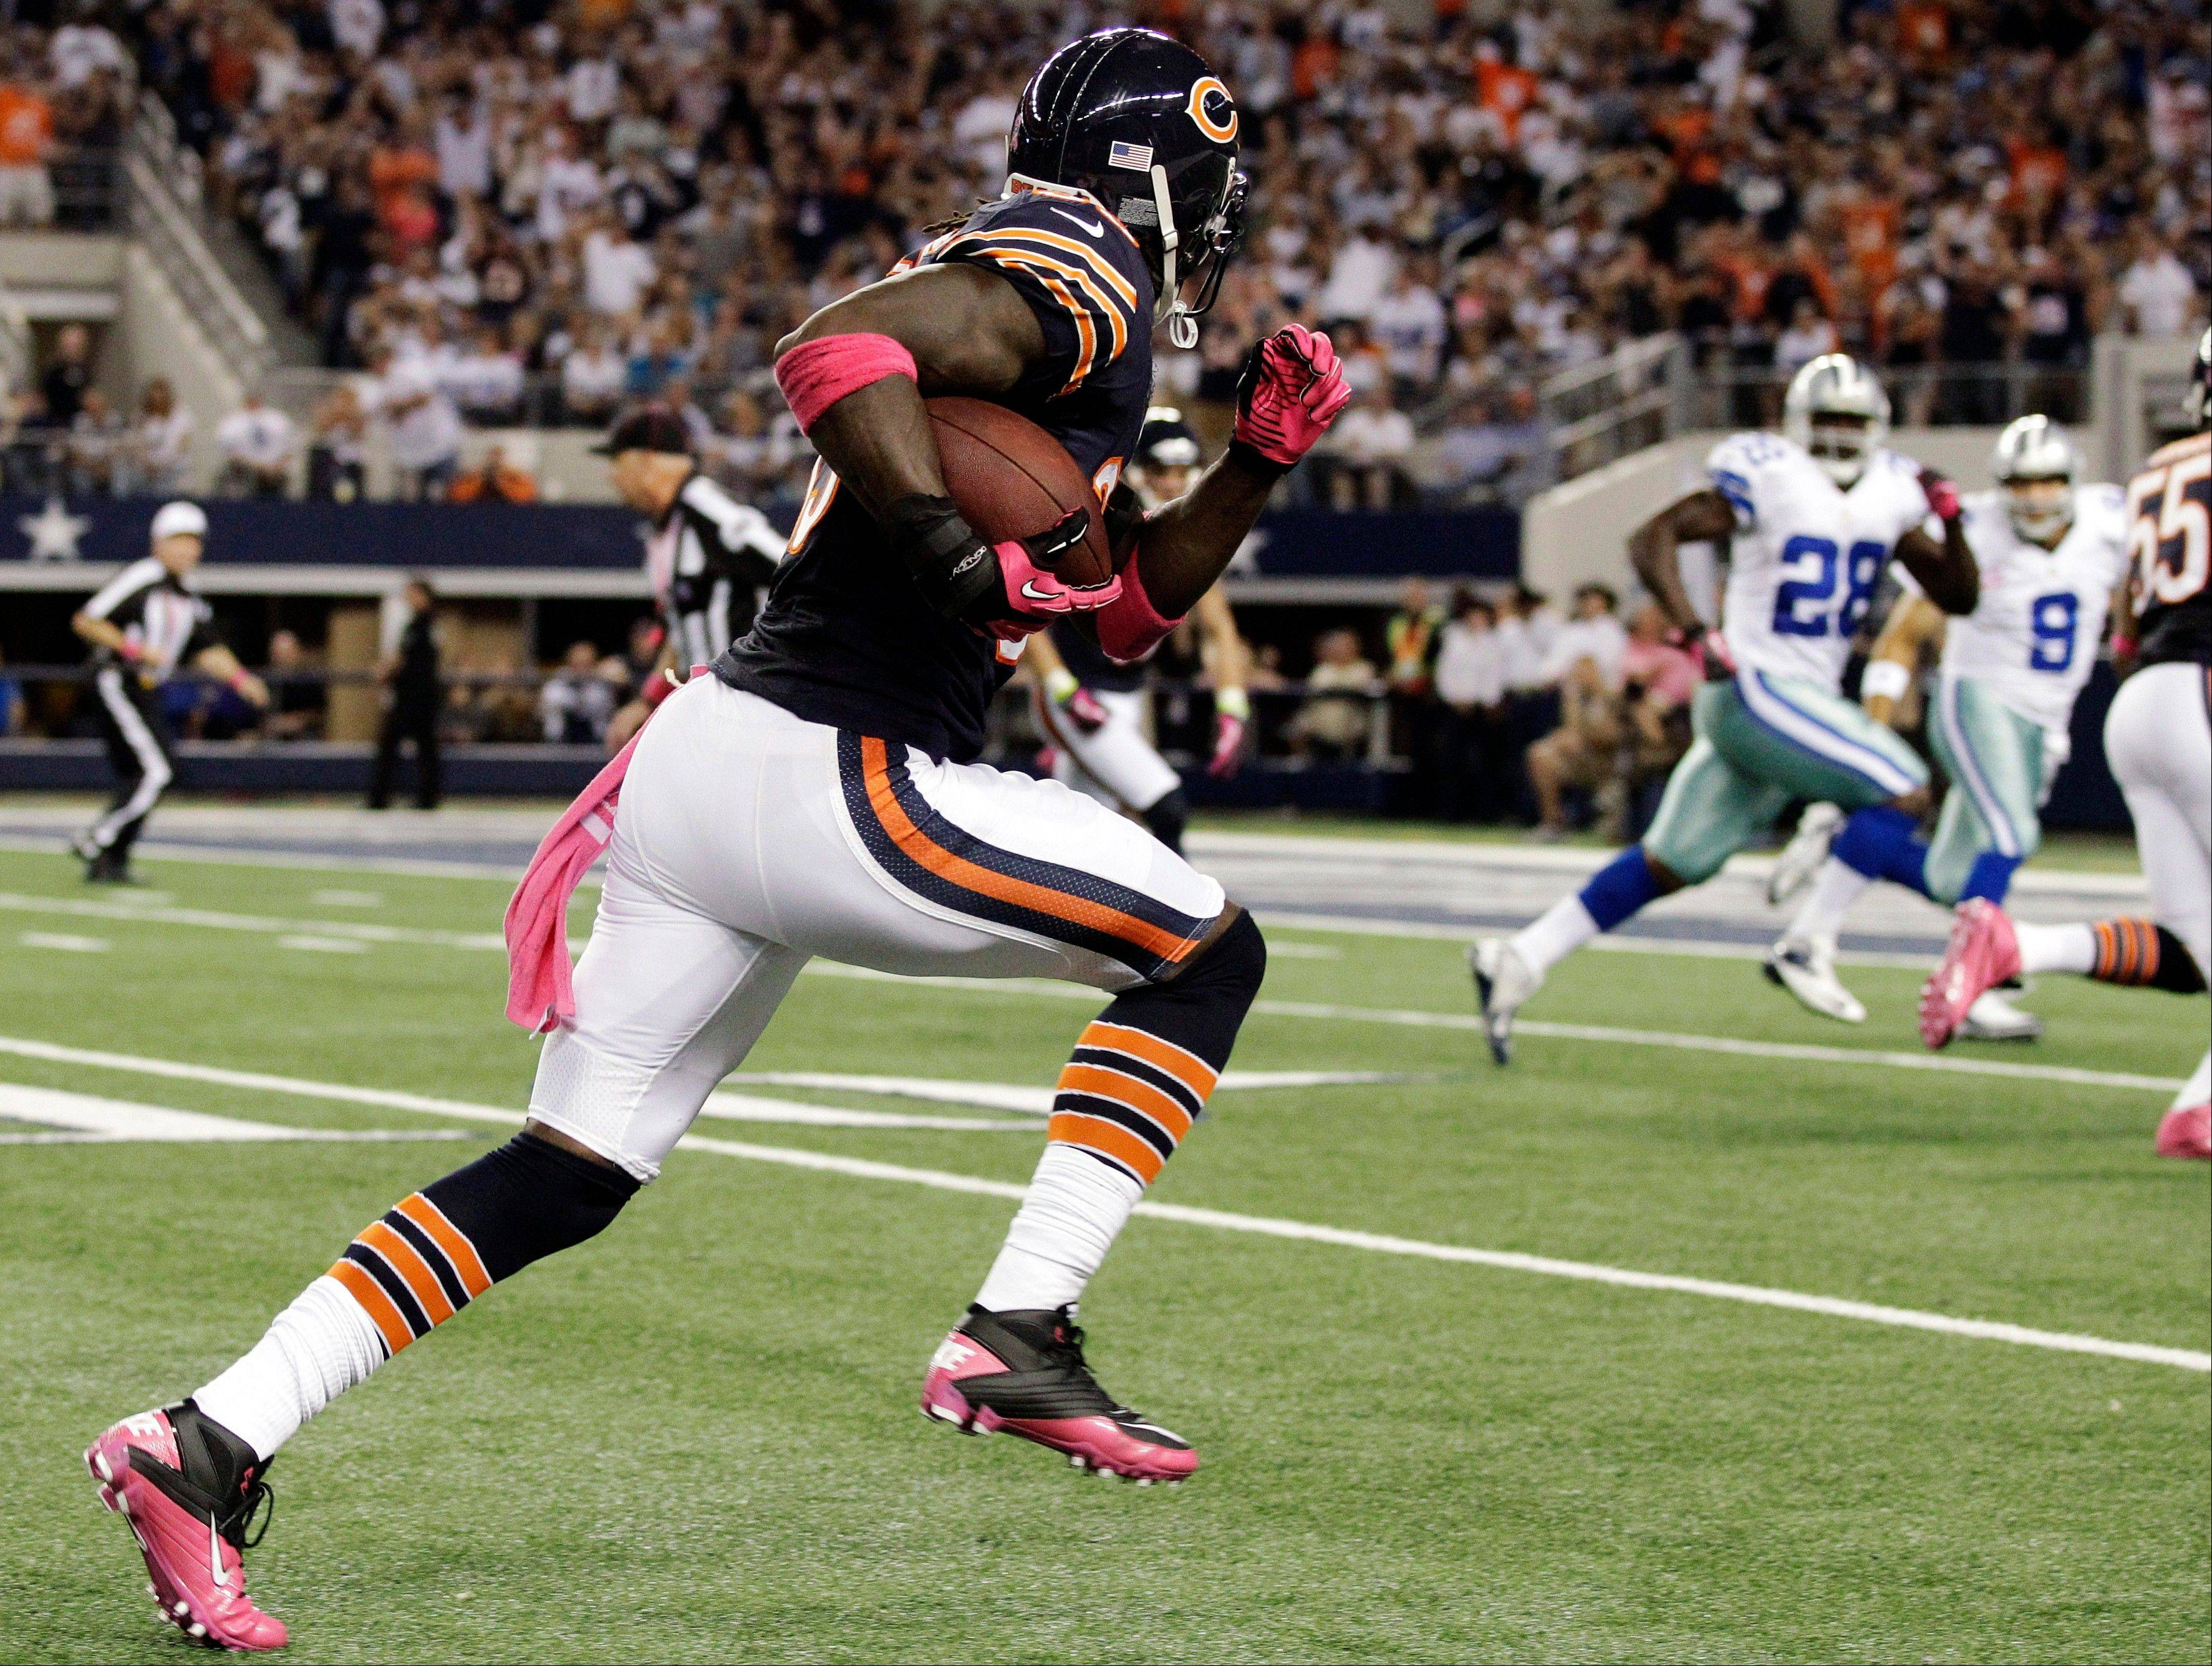 Bears cornerback Charles Tillman returns an interception for a touchdown against the Cowboys on Oct. 1.